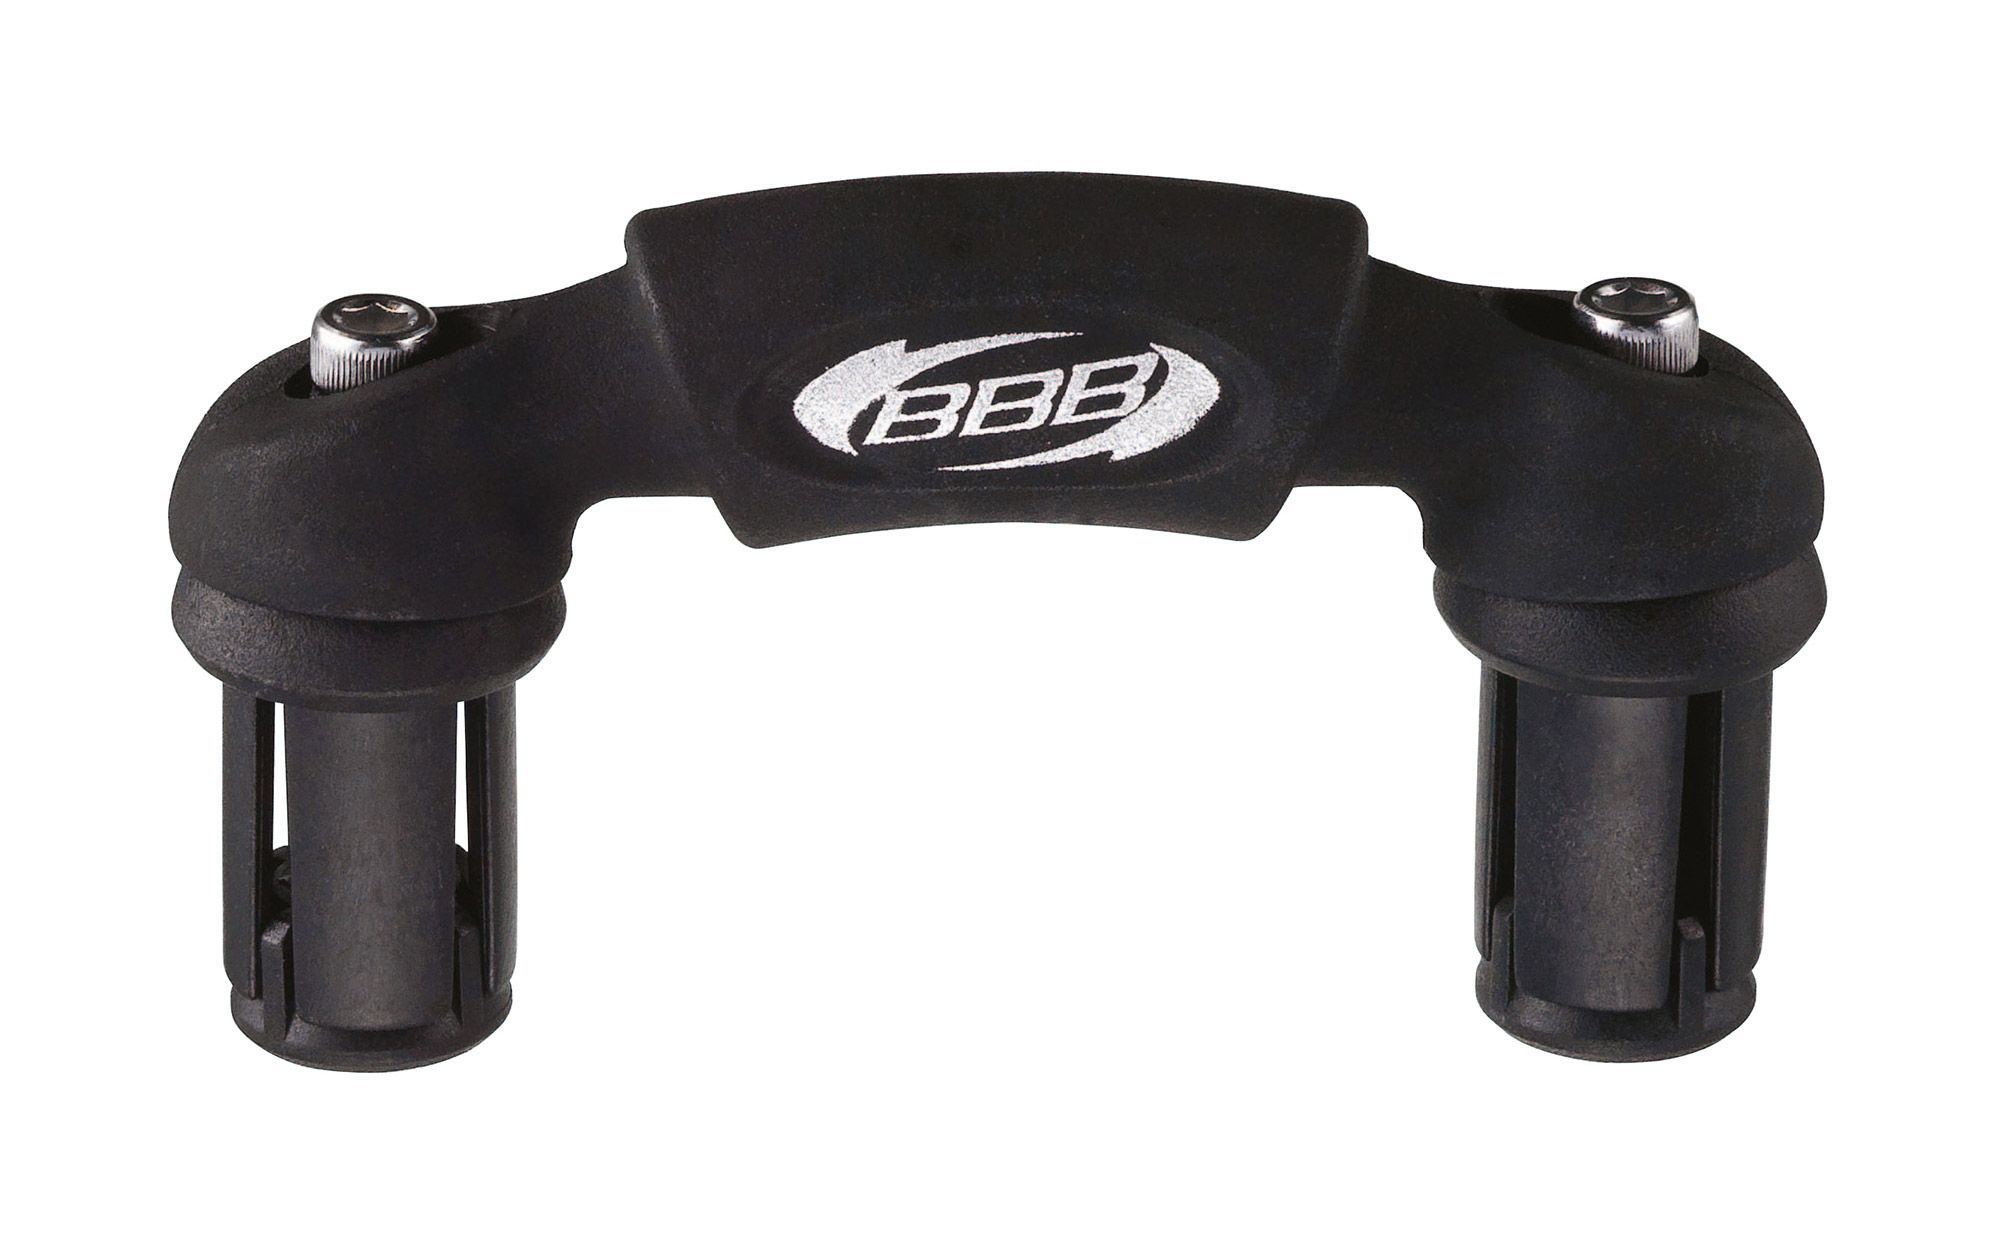 BBB BHB-55 - AEROFIX BRIDGE ADAPTER - BLACK 2929055501